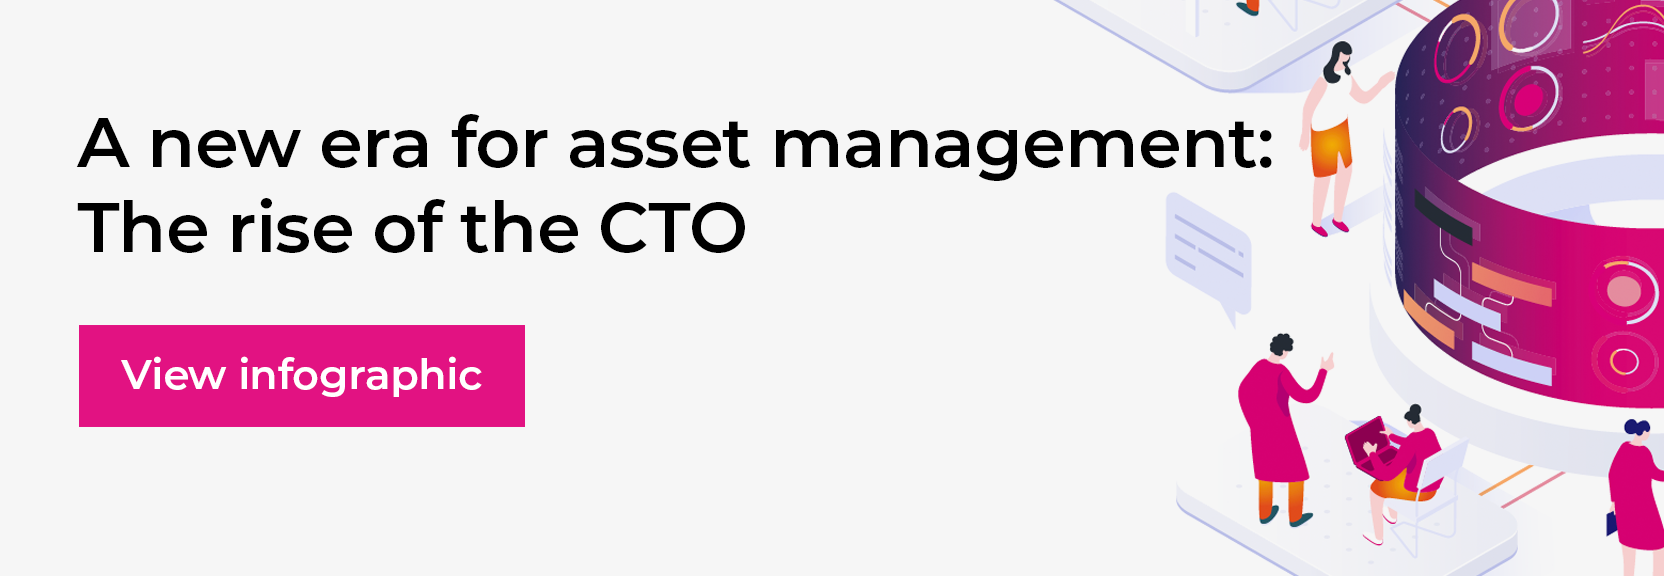 A new era for asset management: The rise of the CTO